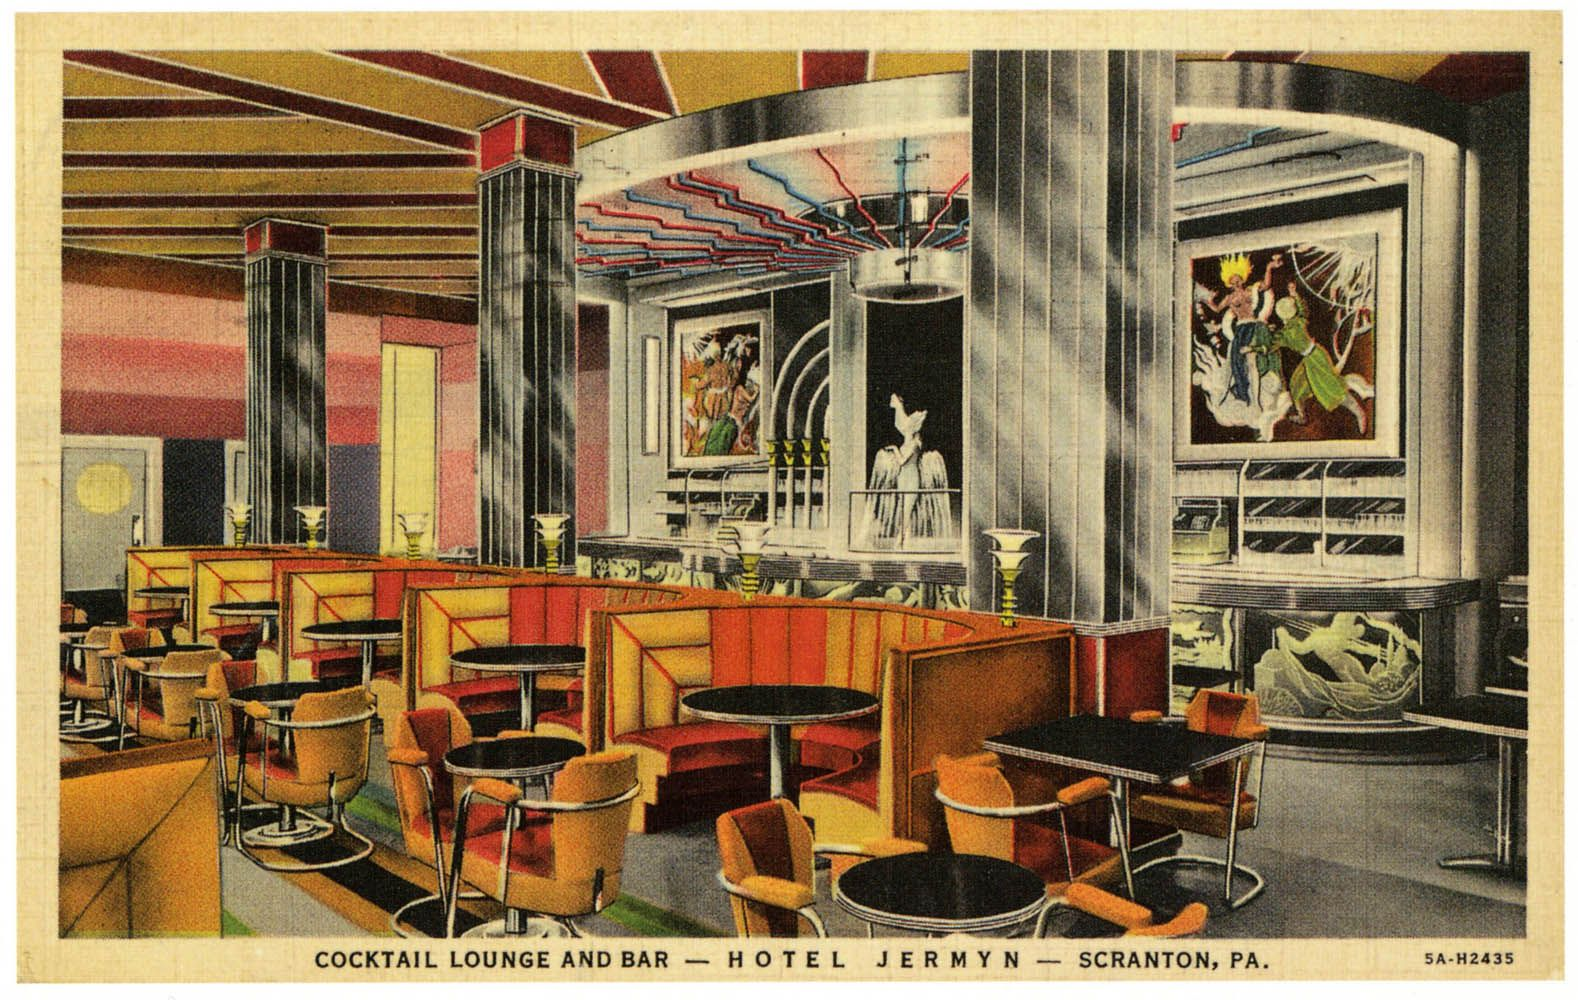 Vintage Postcard Cocktail Lounge And Bar At The Hotel Jermyn Scranton Pennsylvania 1935